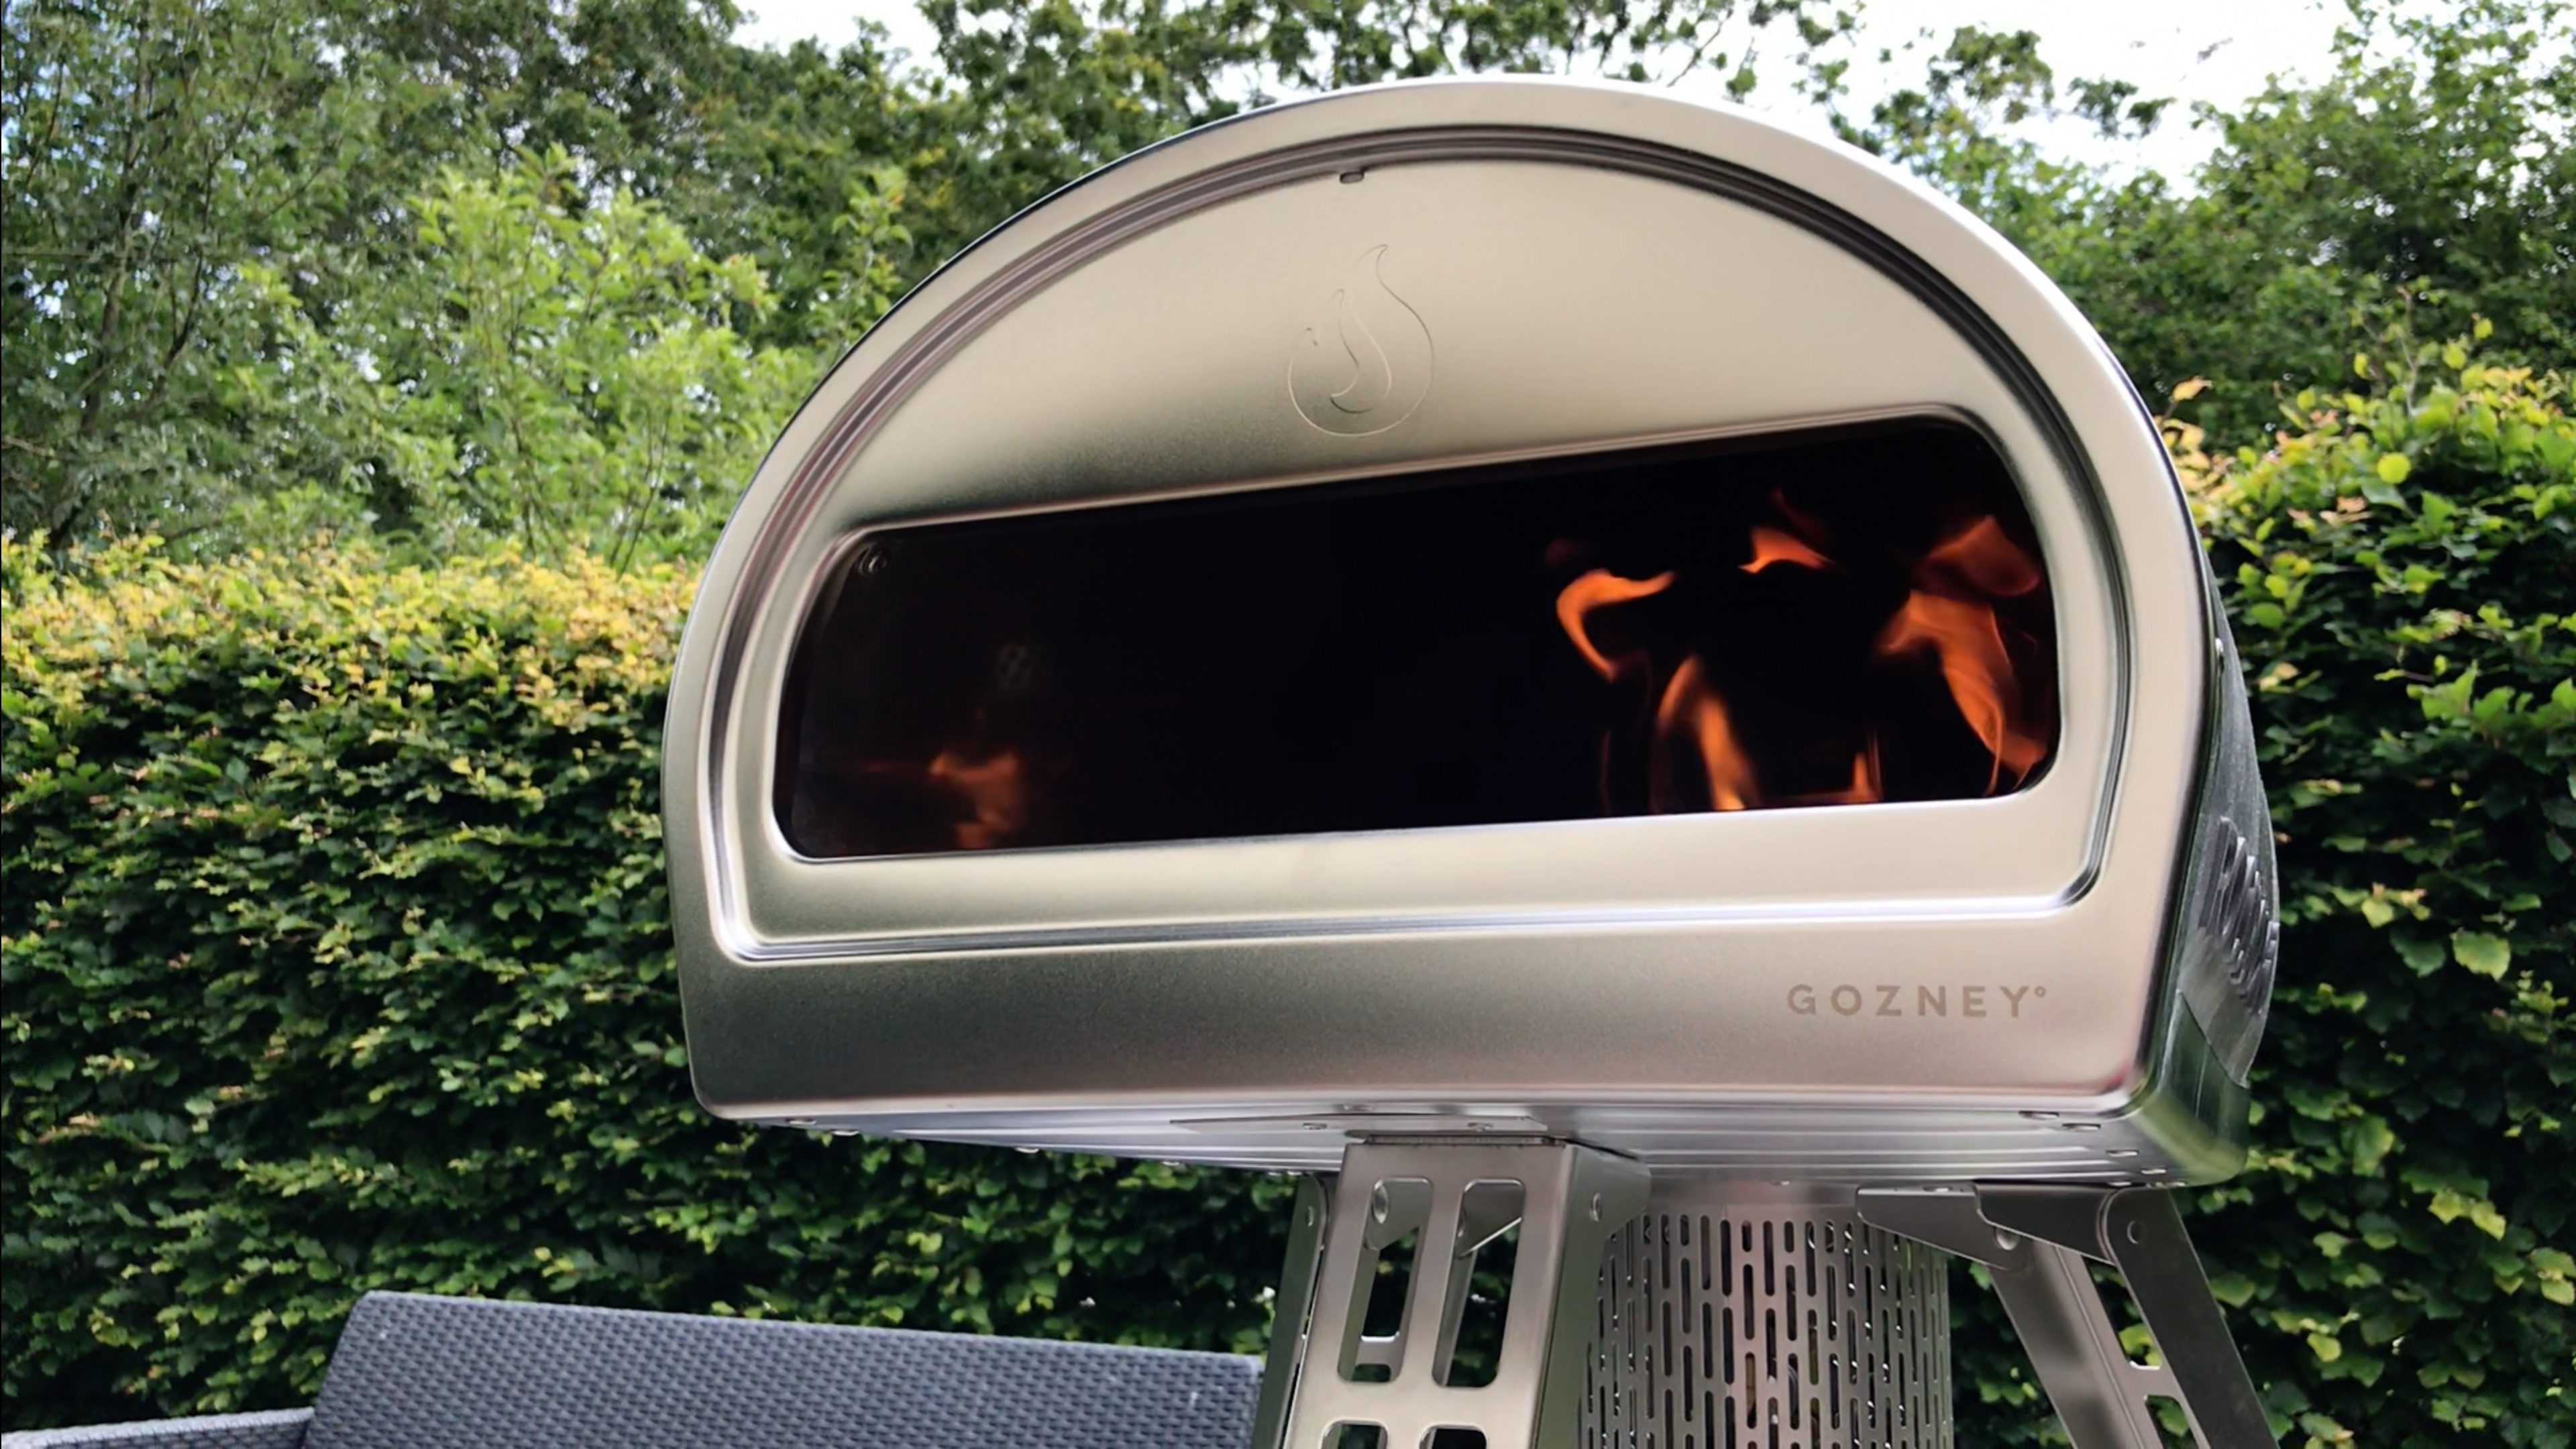 ROCCBOX PIZZA OVEN WOOD BURNER REVIEW AND PROCESS